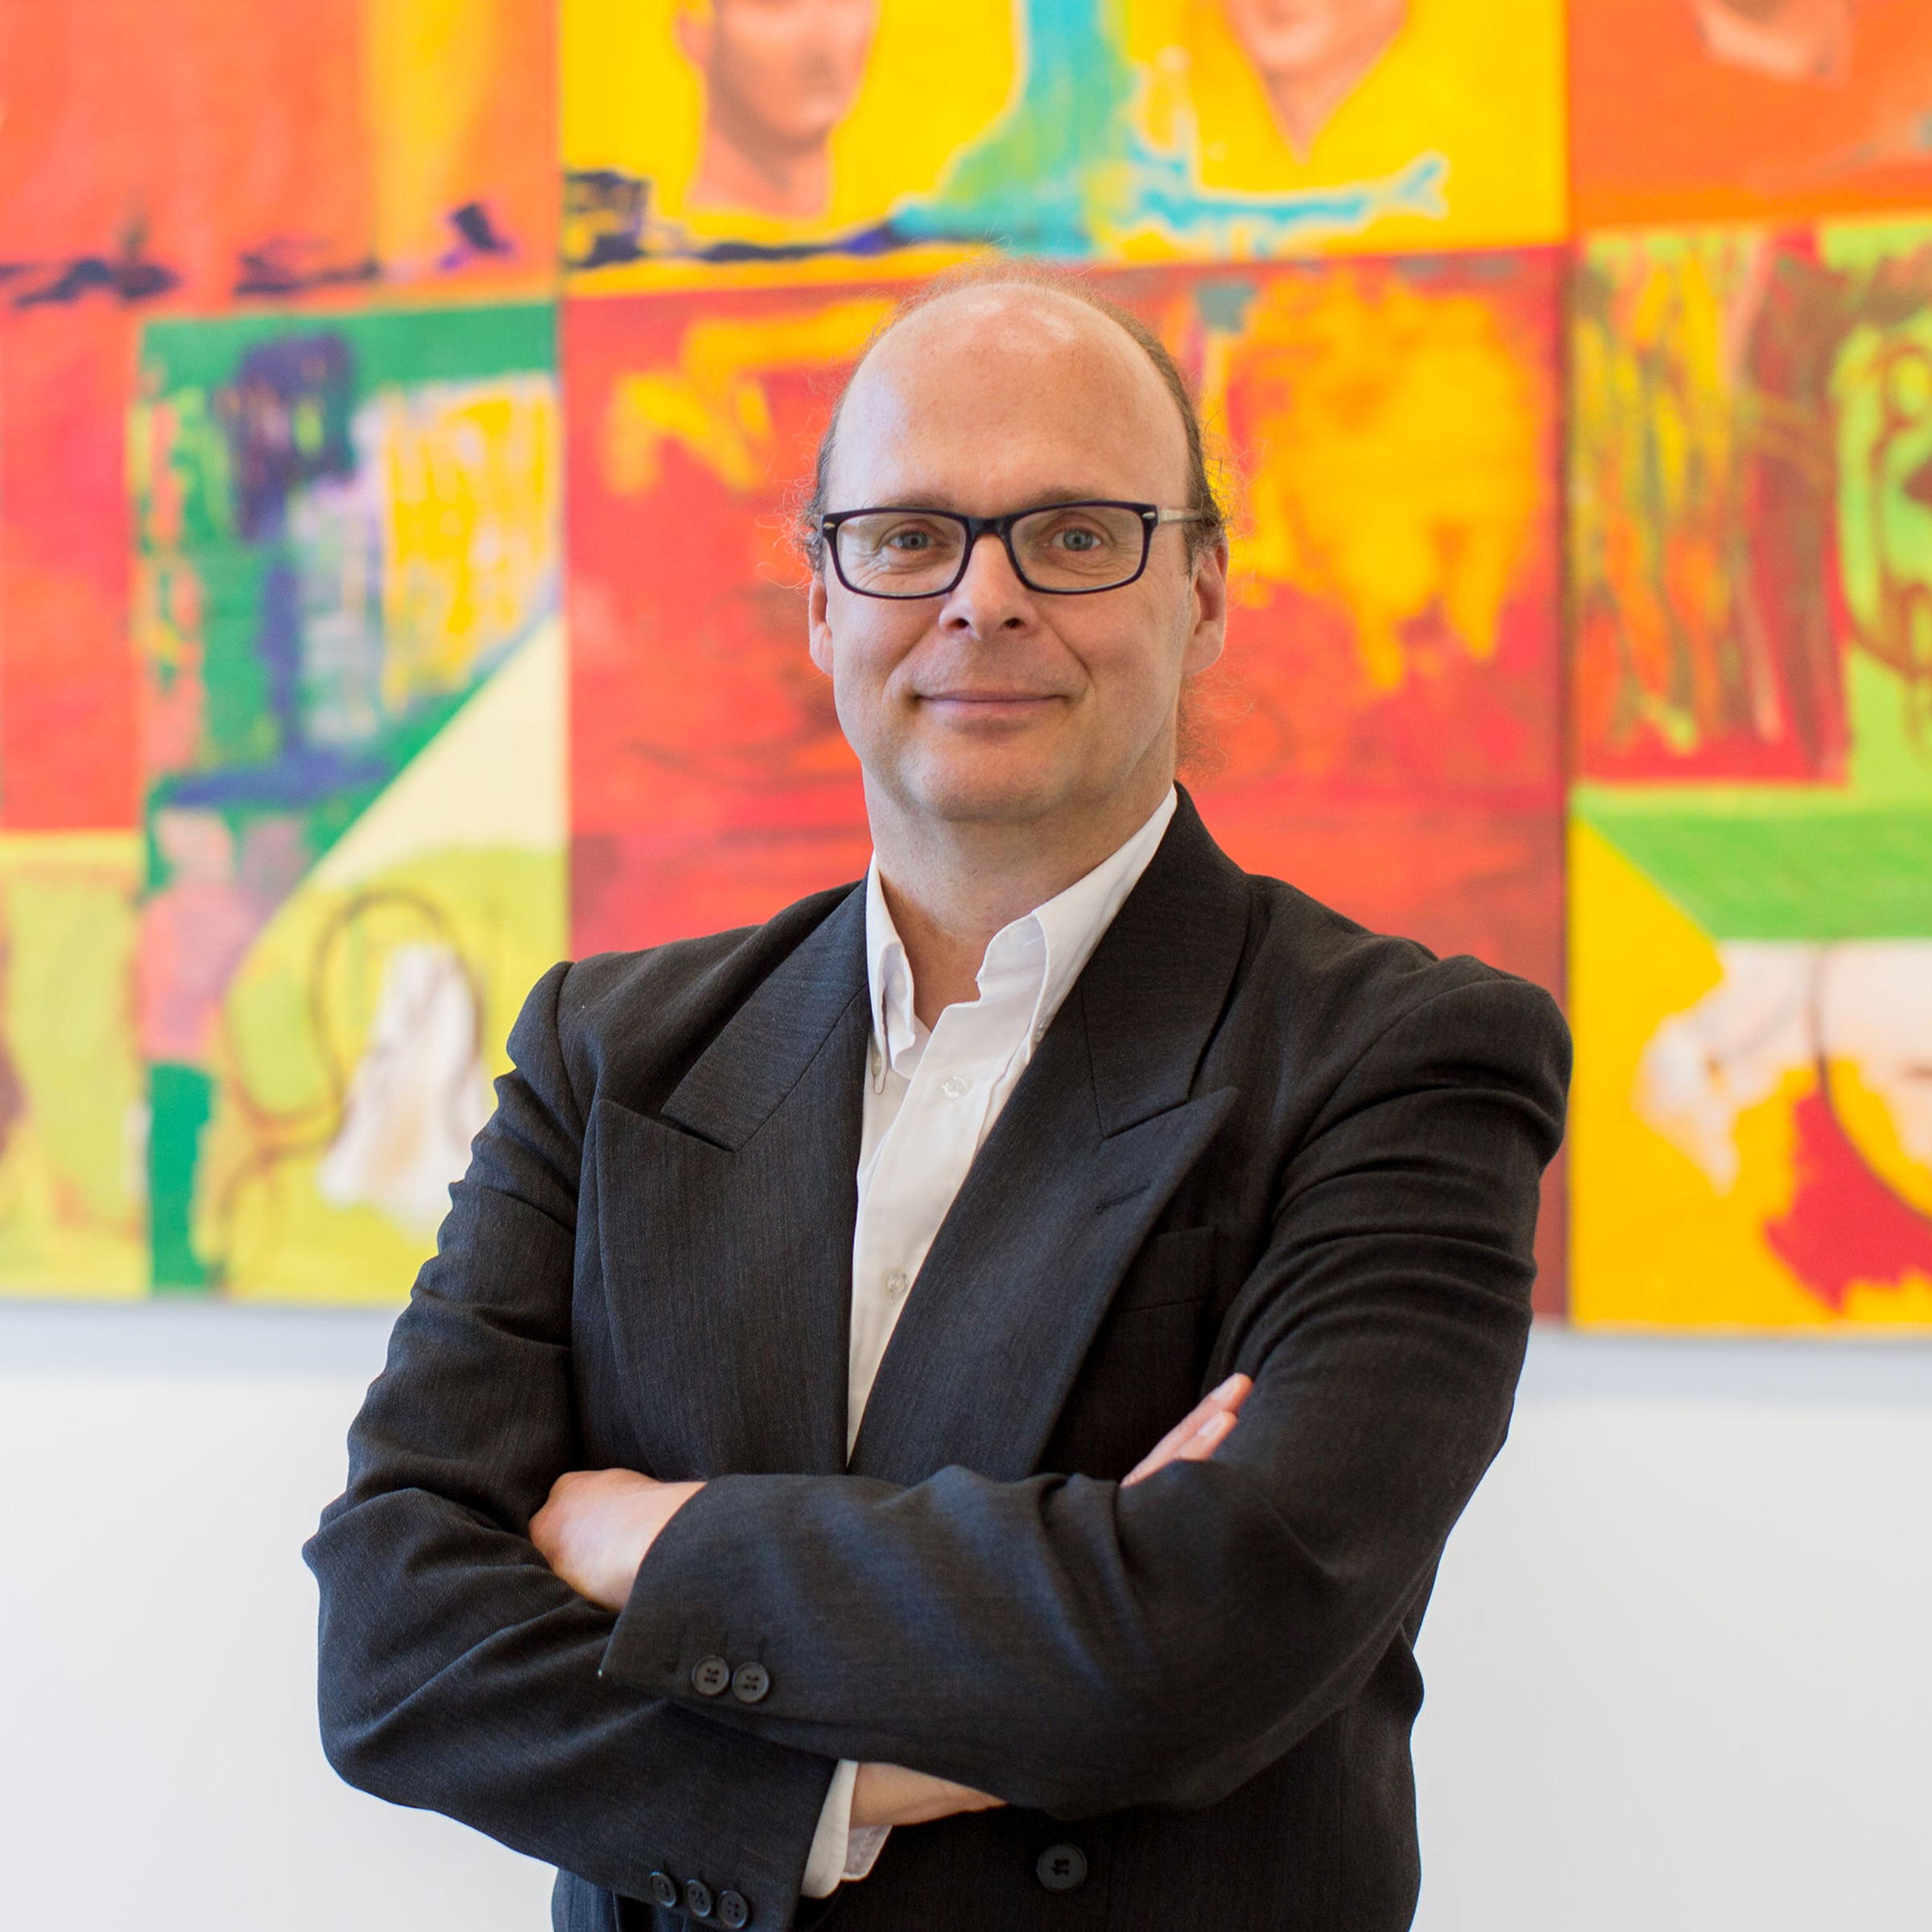 A picture of Kris Gledhill